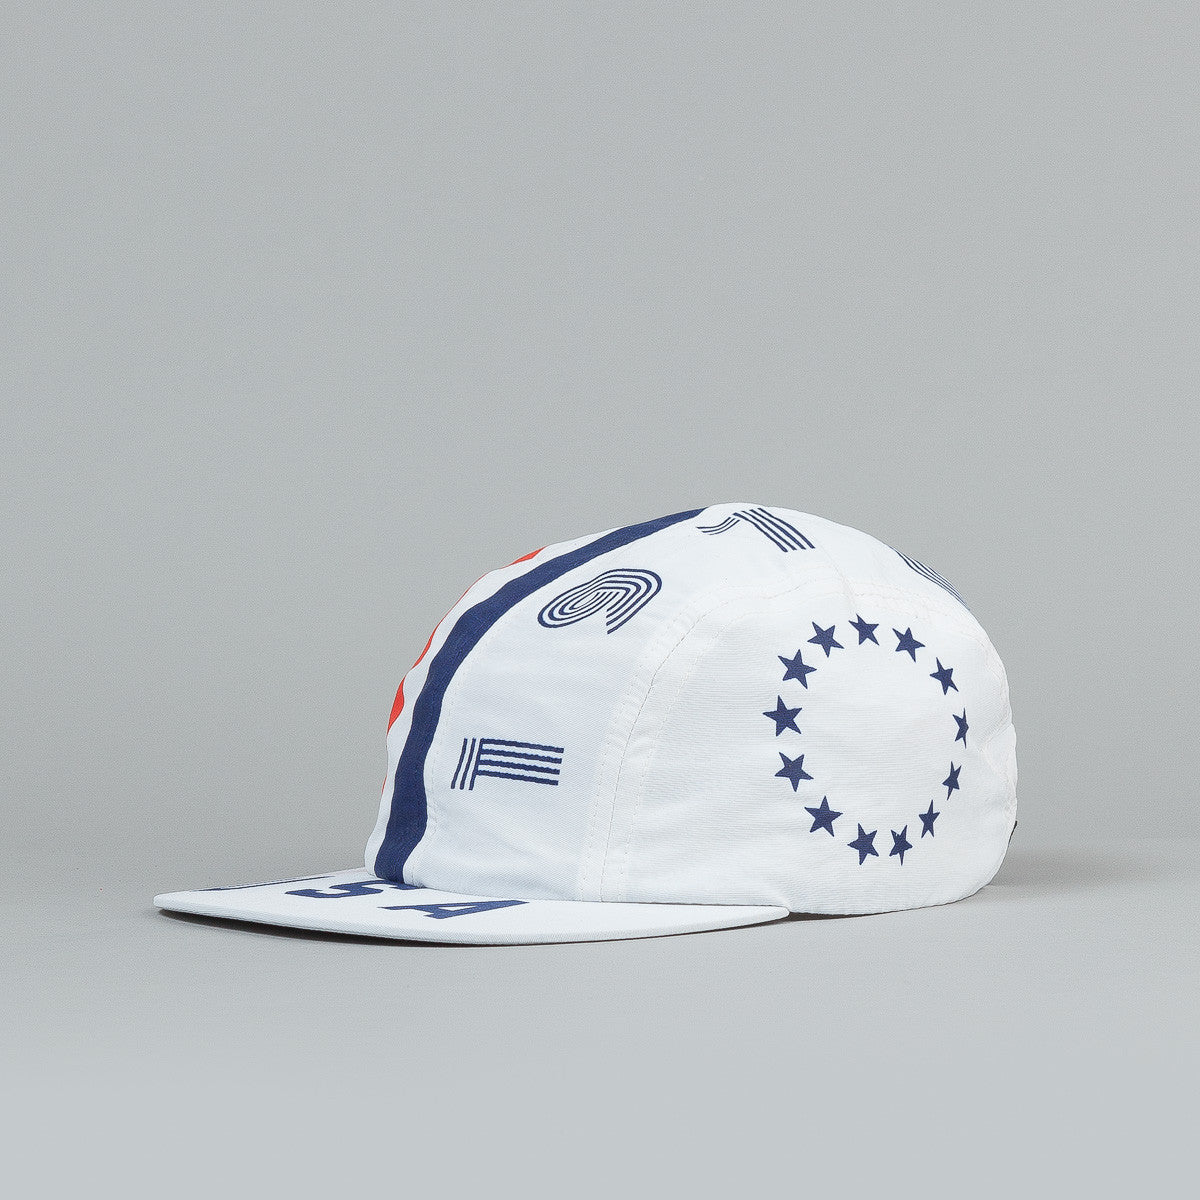 The Decades Bicentennial 4 Panel Cap